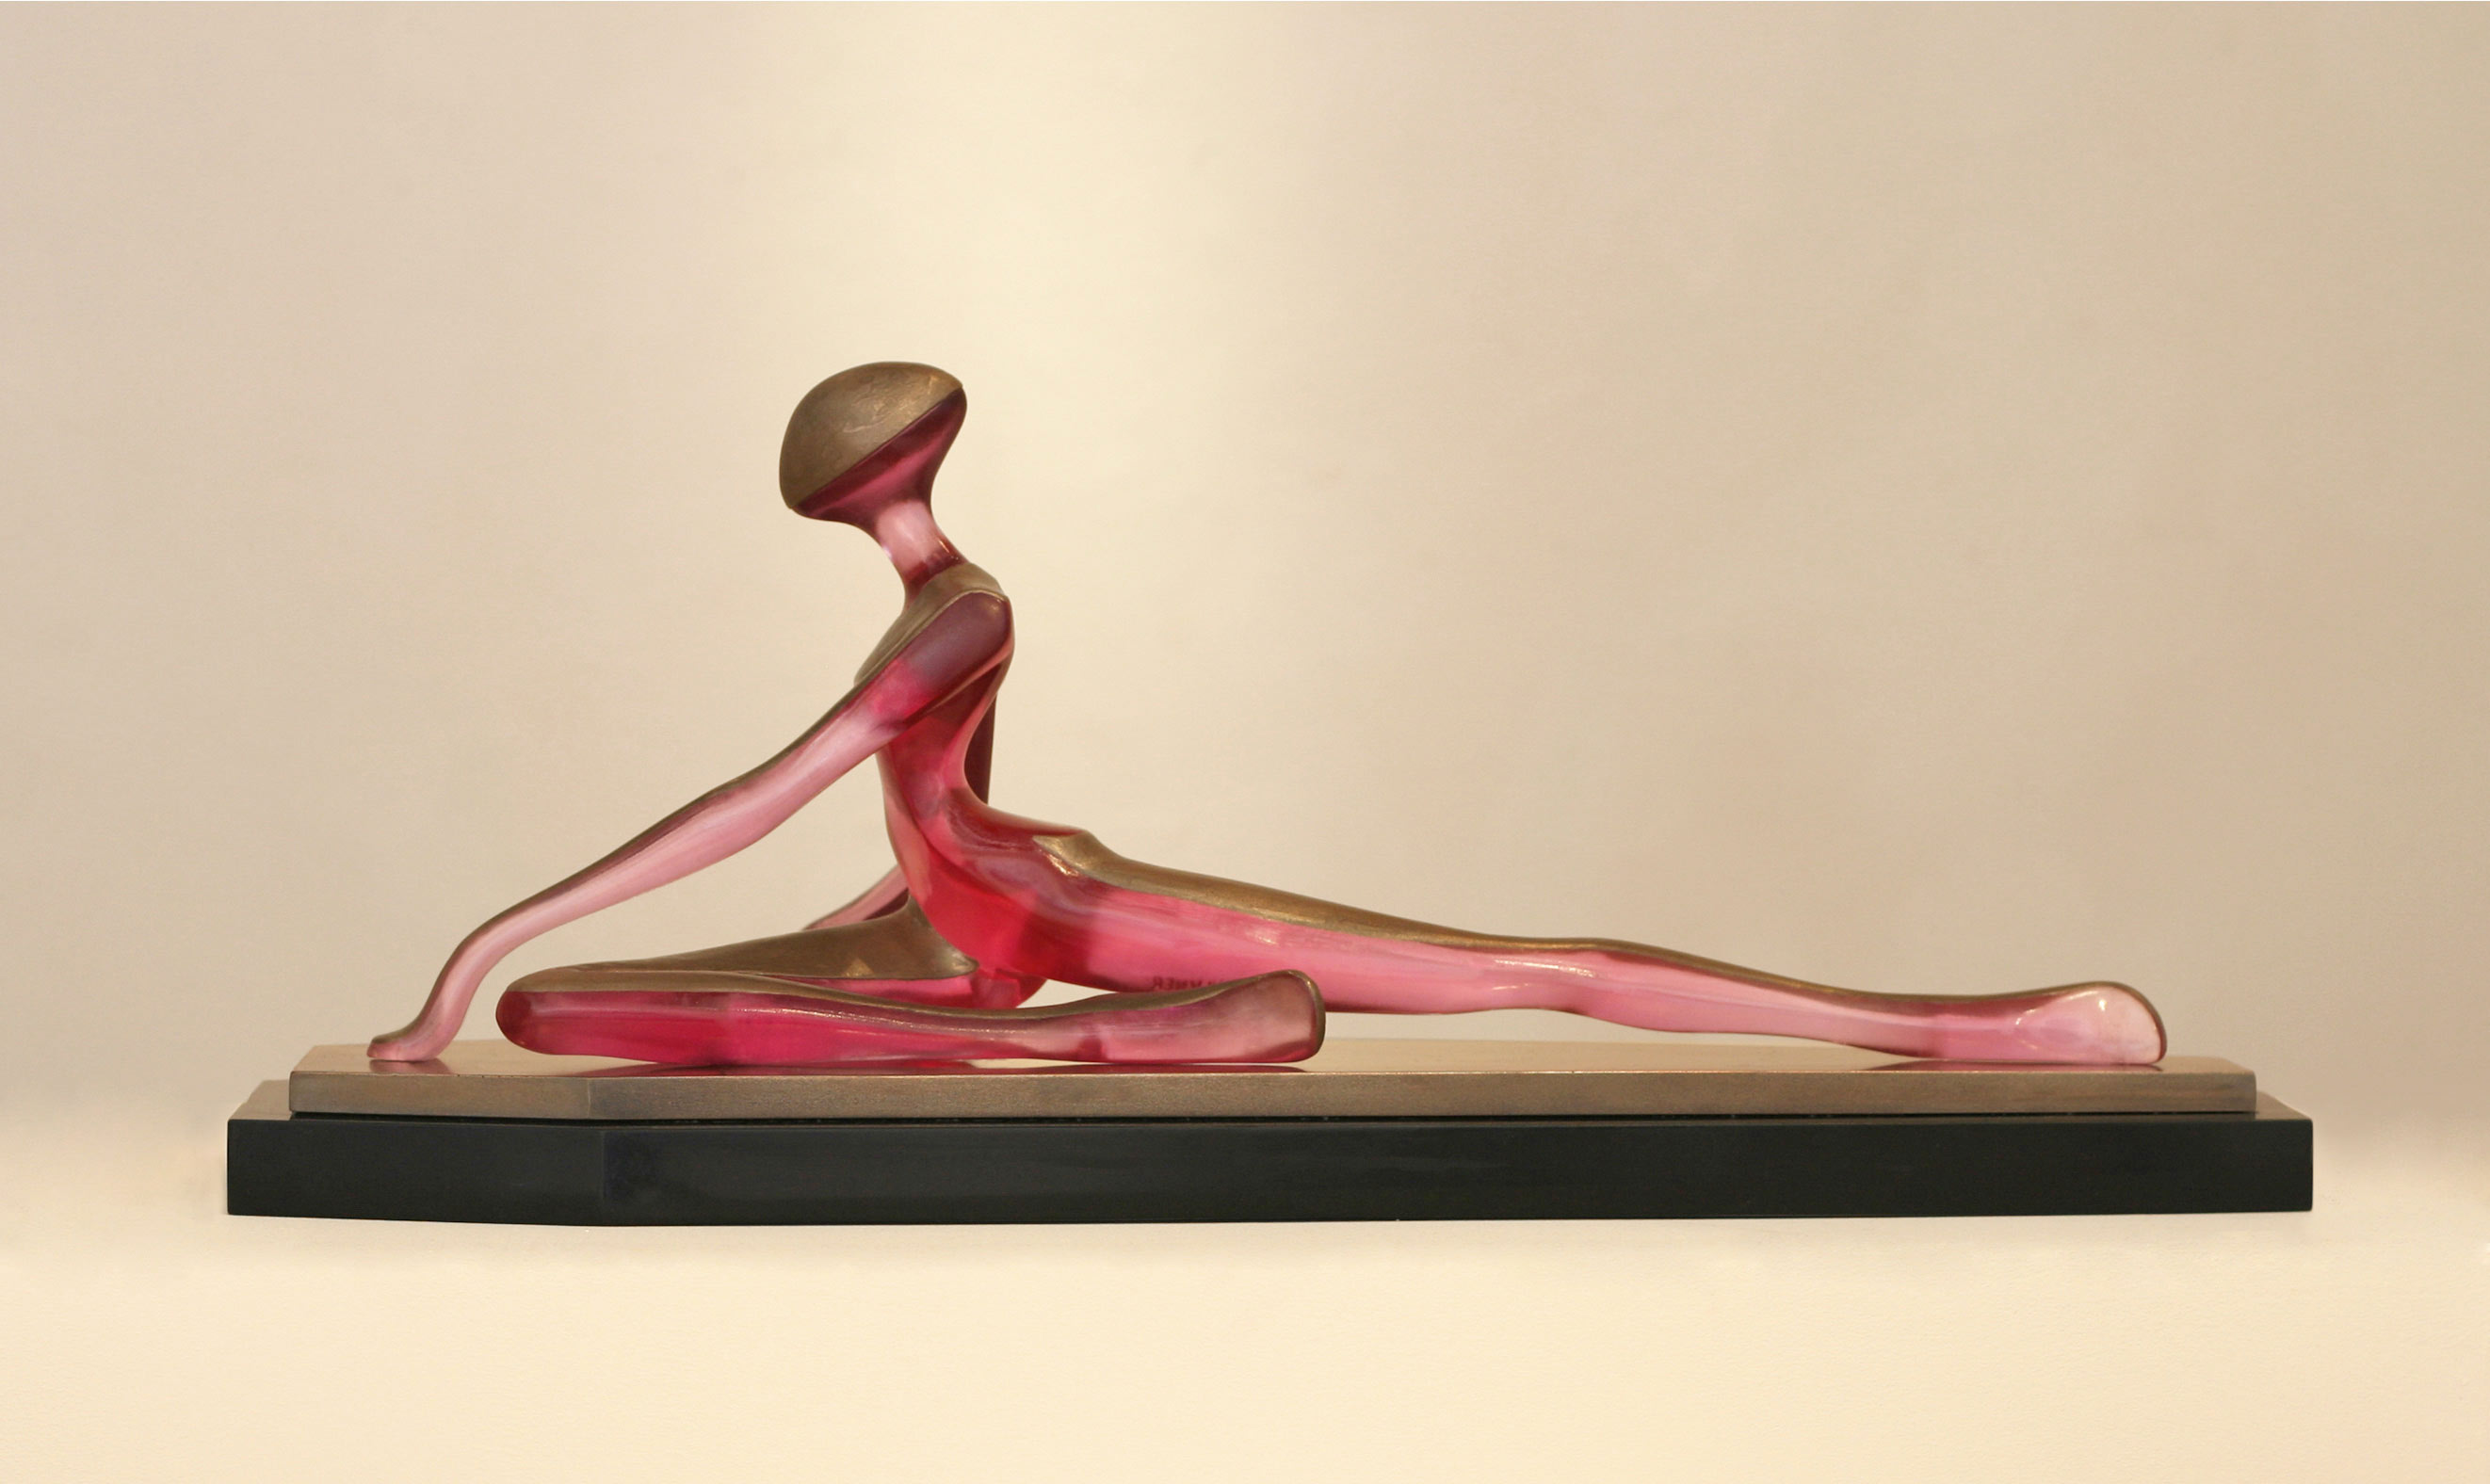 Poise ballet dancer sculpture